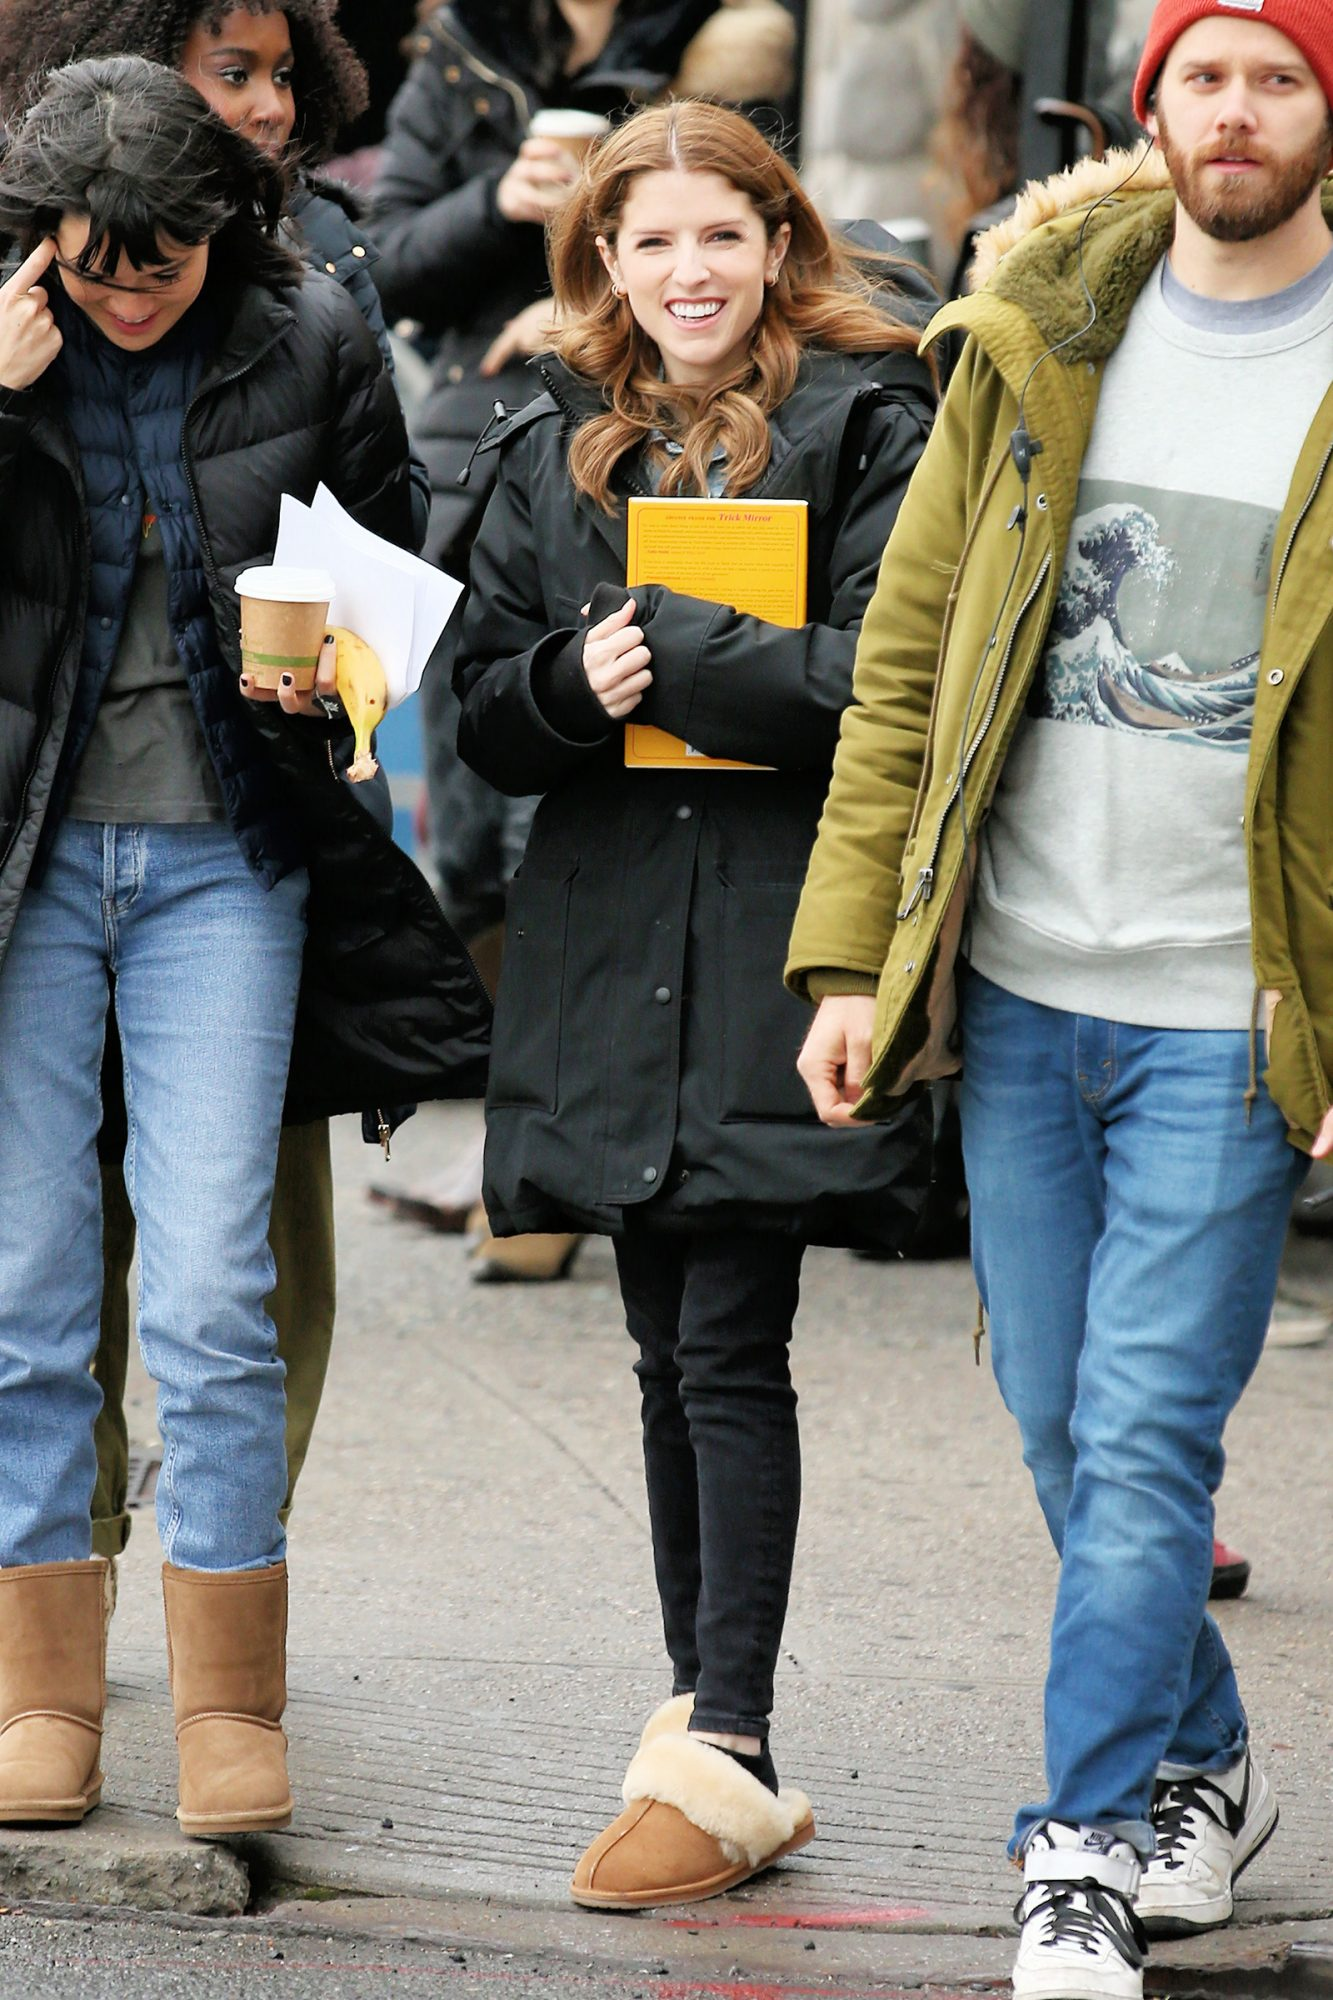 Anna Kendrick is seen carrying a copy of 'Trick Mirror: Reflections on Self-Delusion' by Jia Tolentino on the set of 'Love Life' filming in Brooklyn, New York